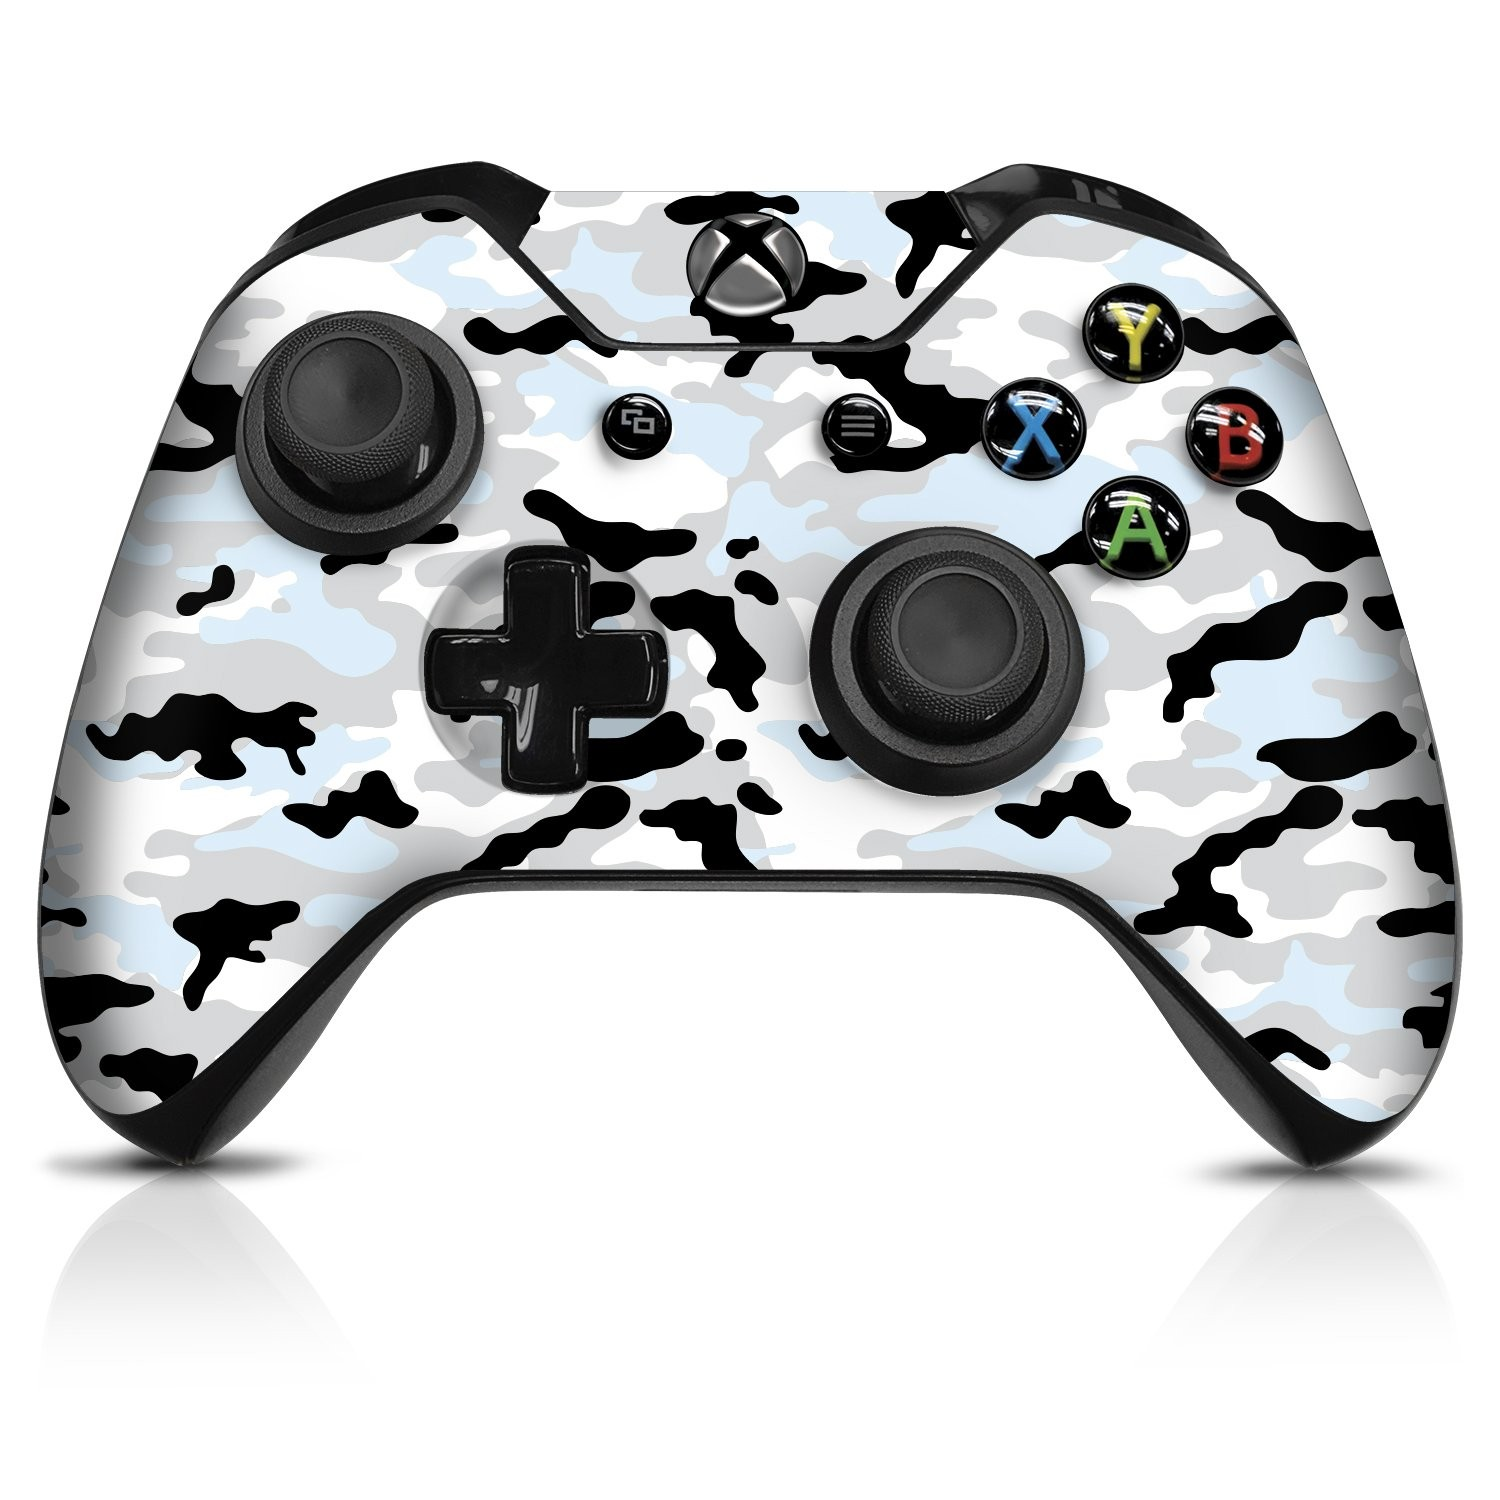 Snow Camo  Xbox One Controller Skin - Officially Licensed by Xbox - Controller Gear